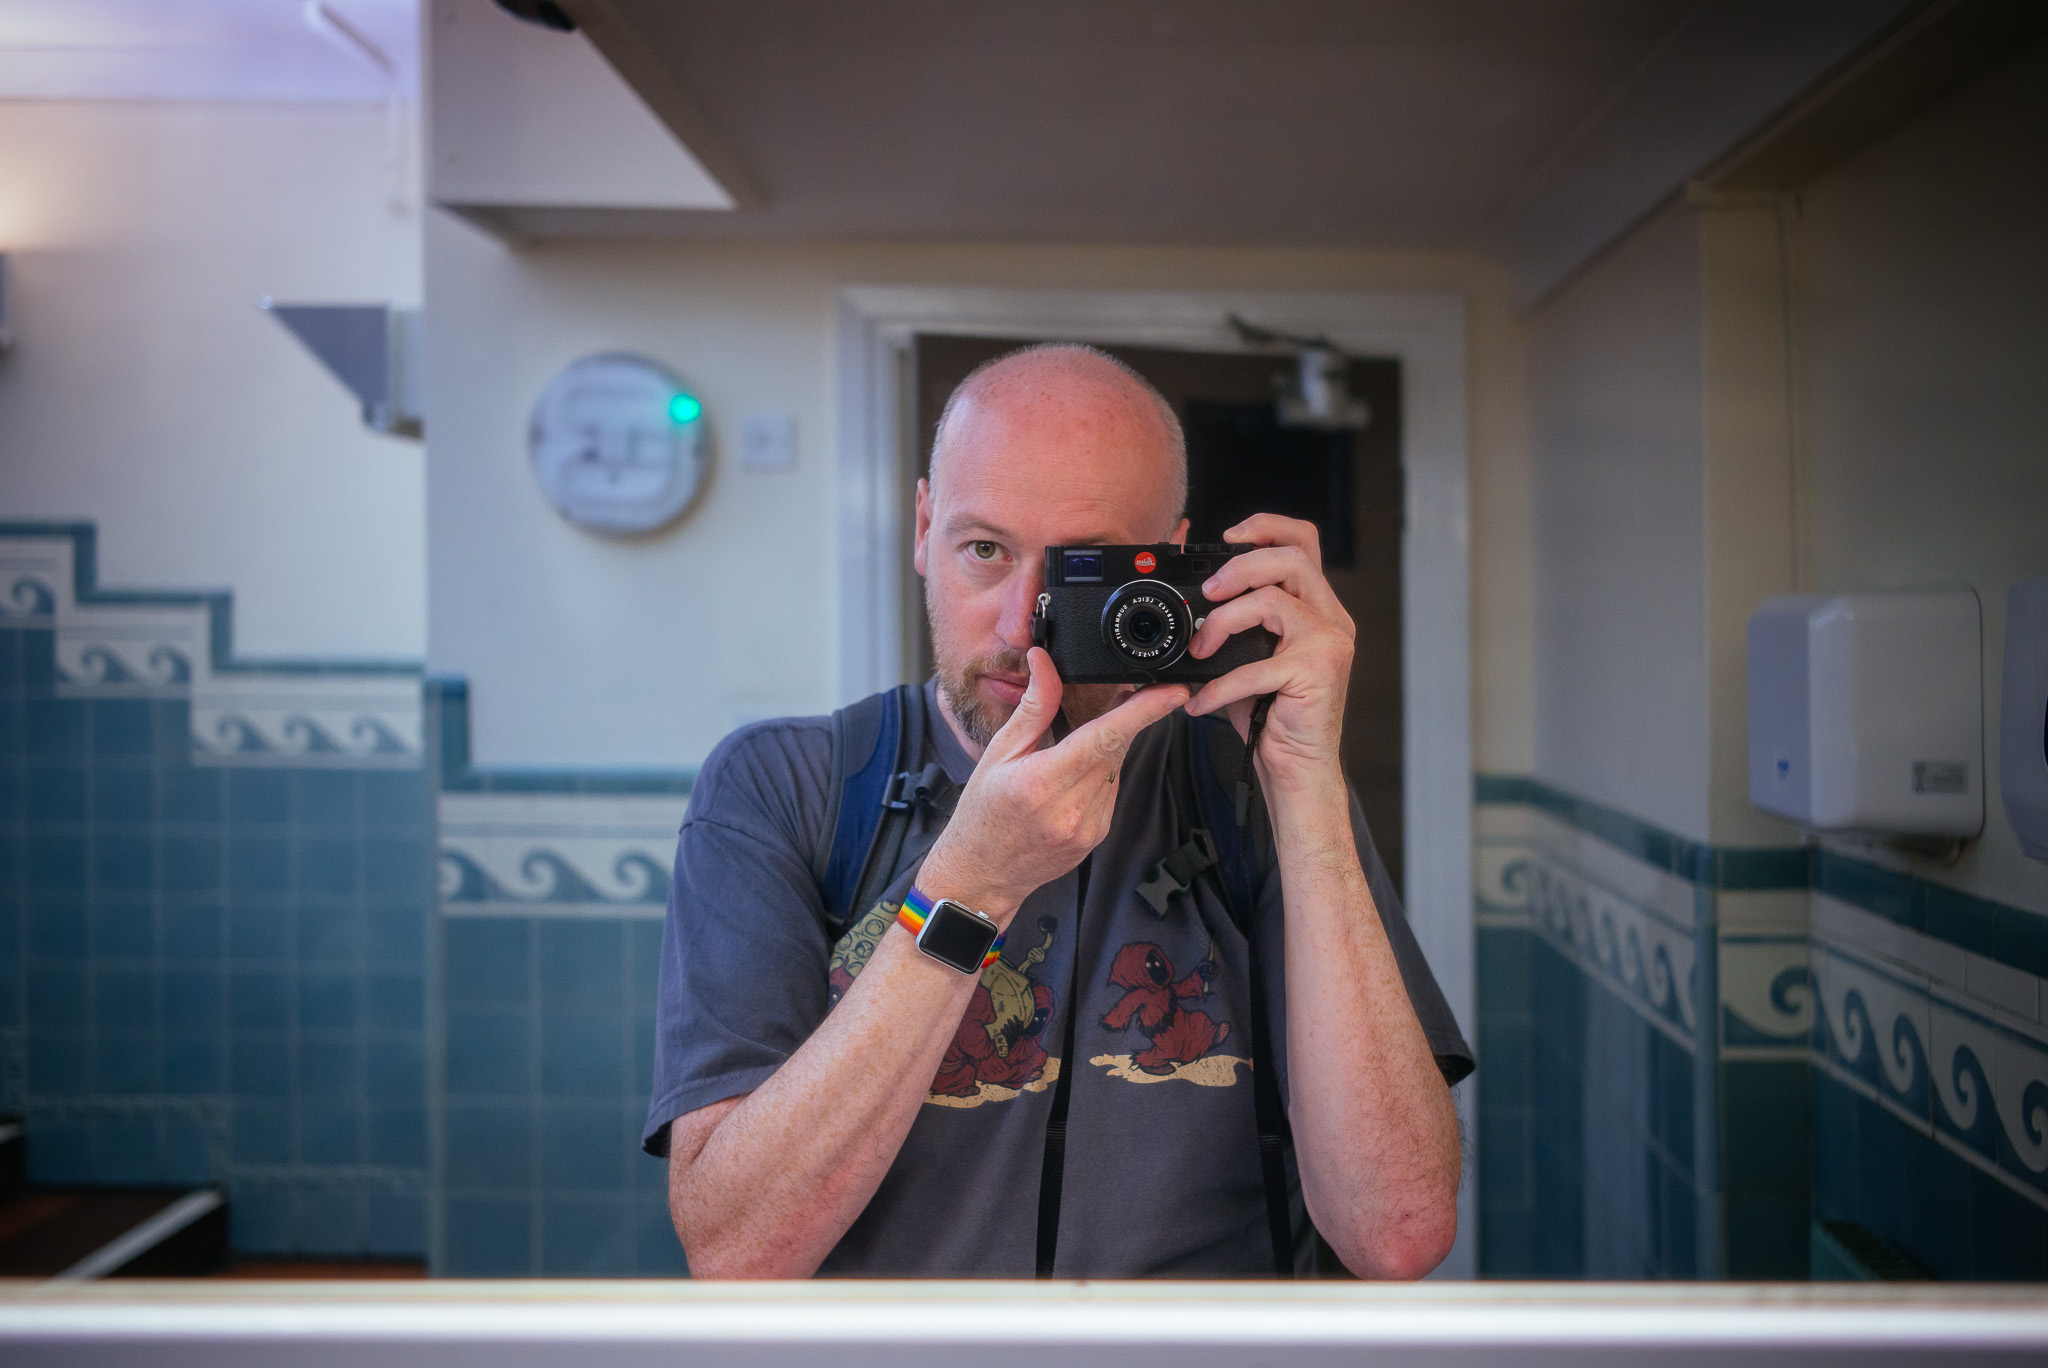 The first week with my Leica m240